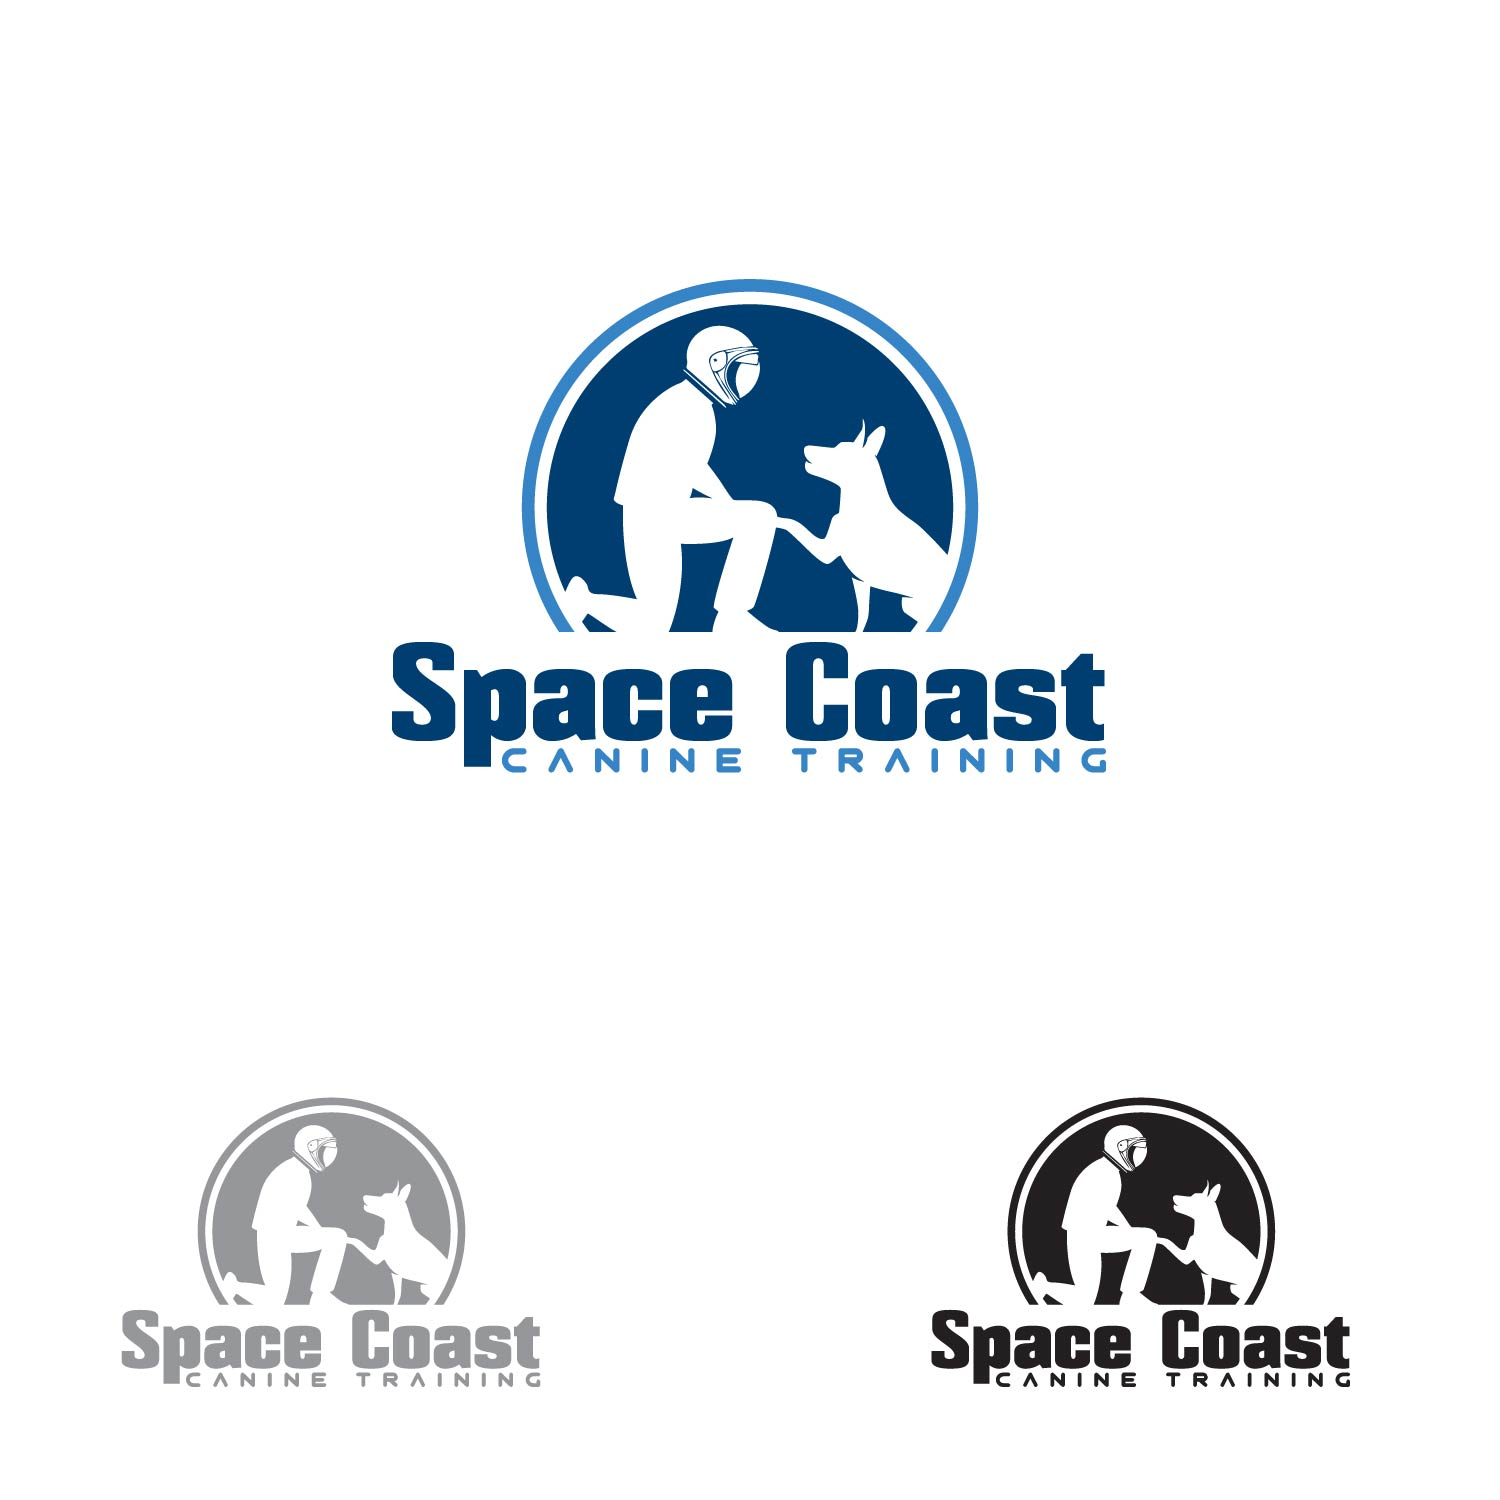 Logo Design by lagalag - Entry No. 12 in the Logo Design Contest Creative Logo Design for Space Coast Canine Training.